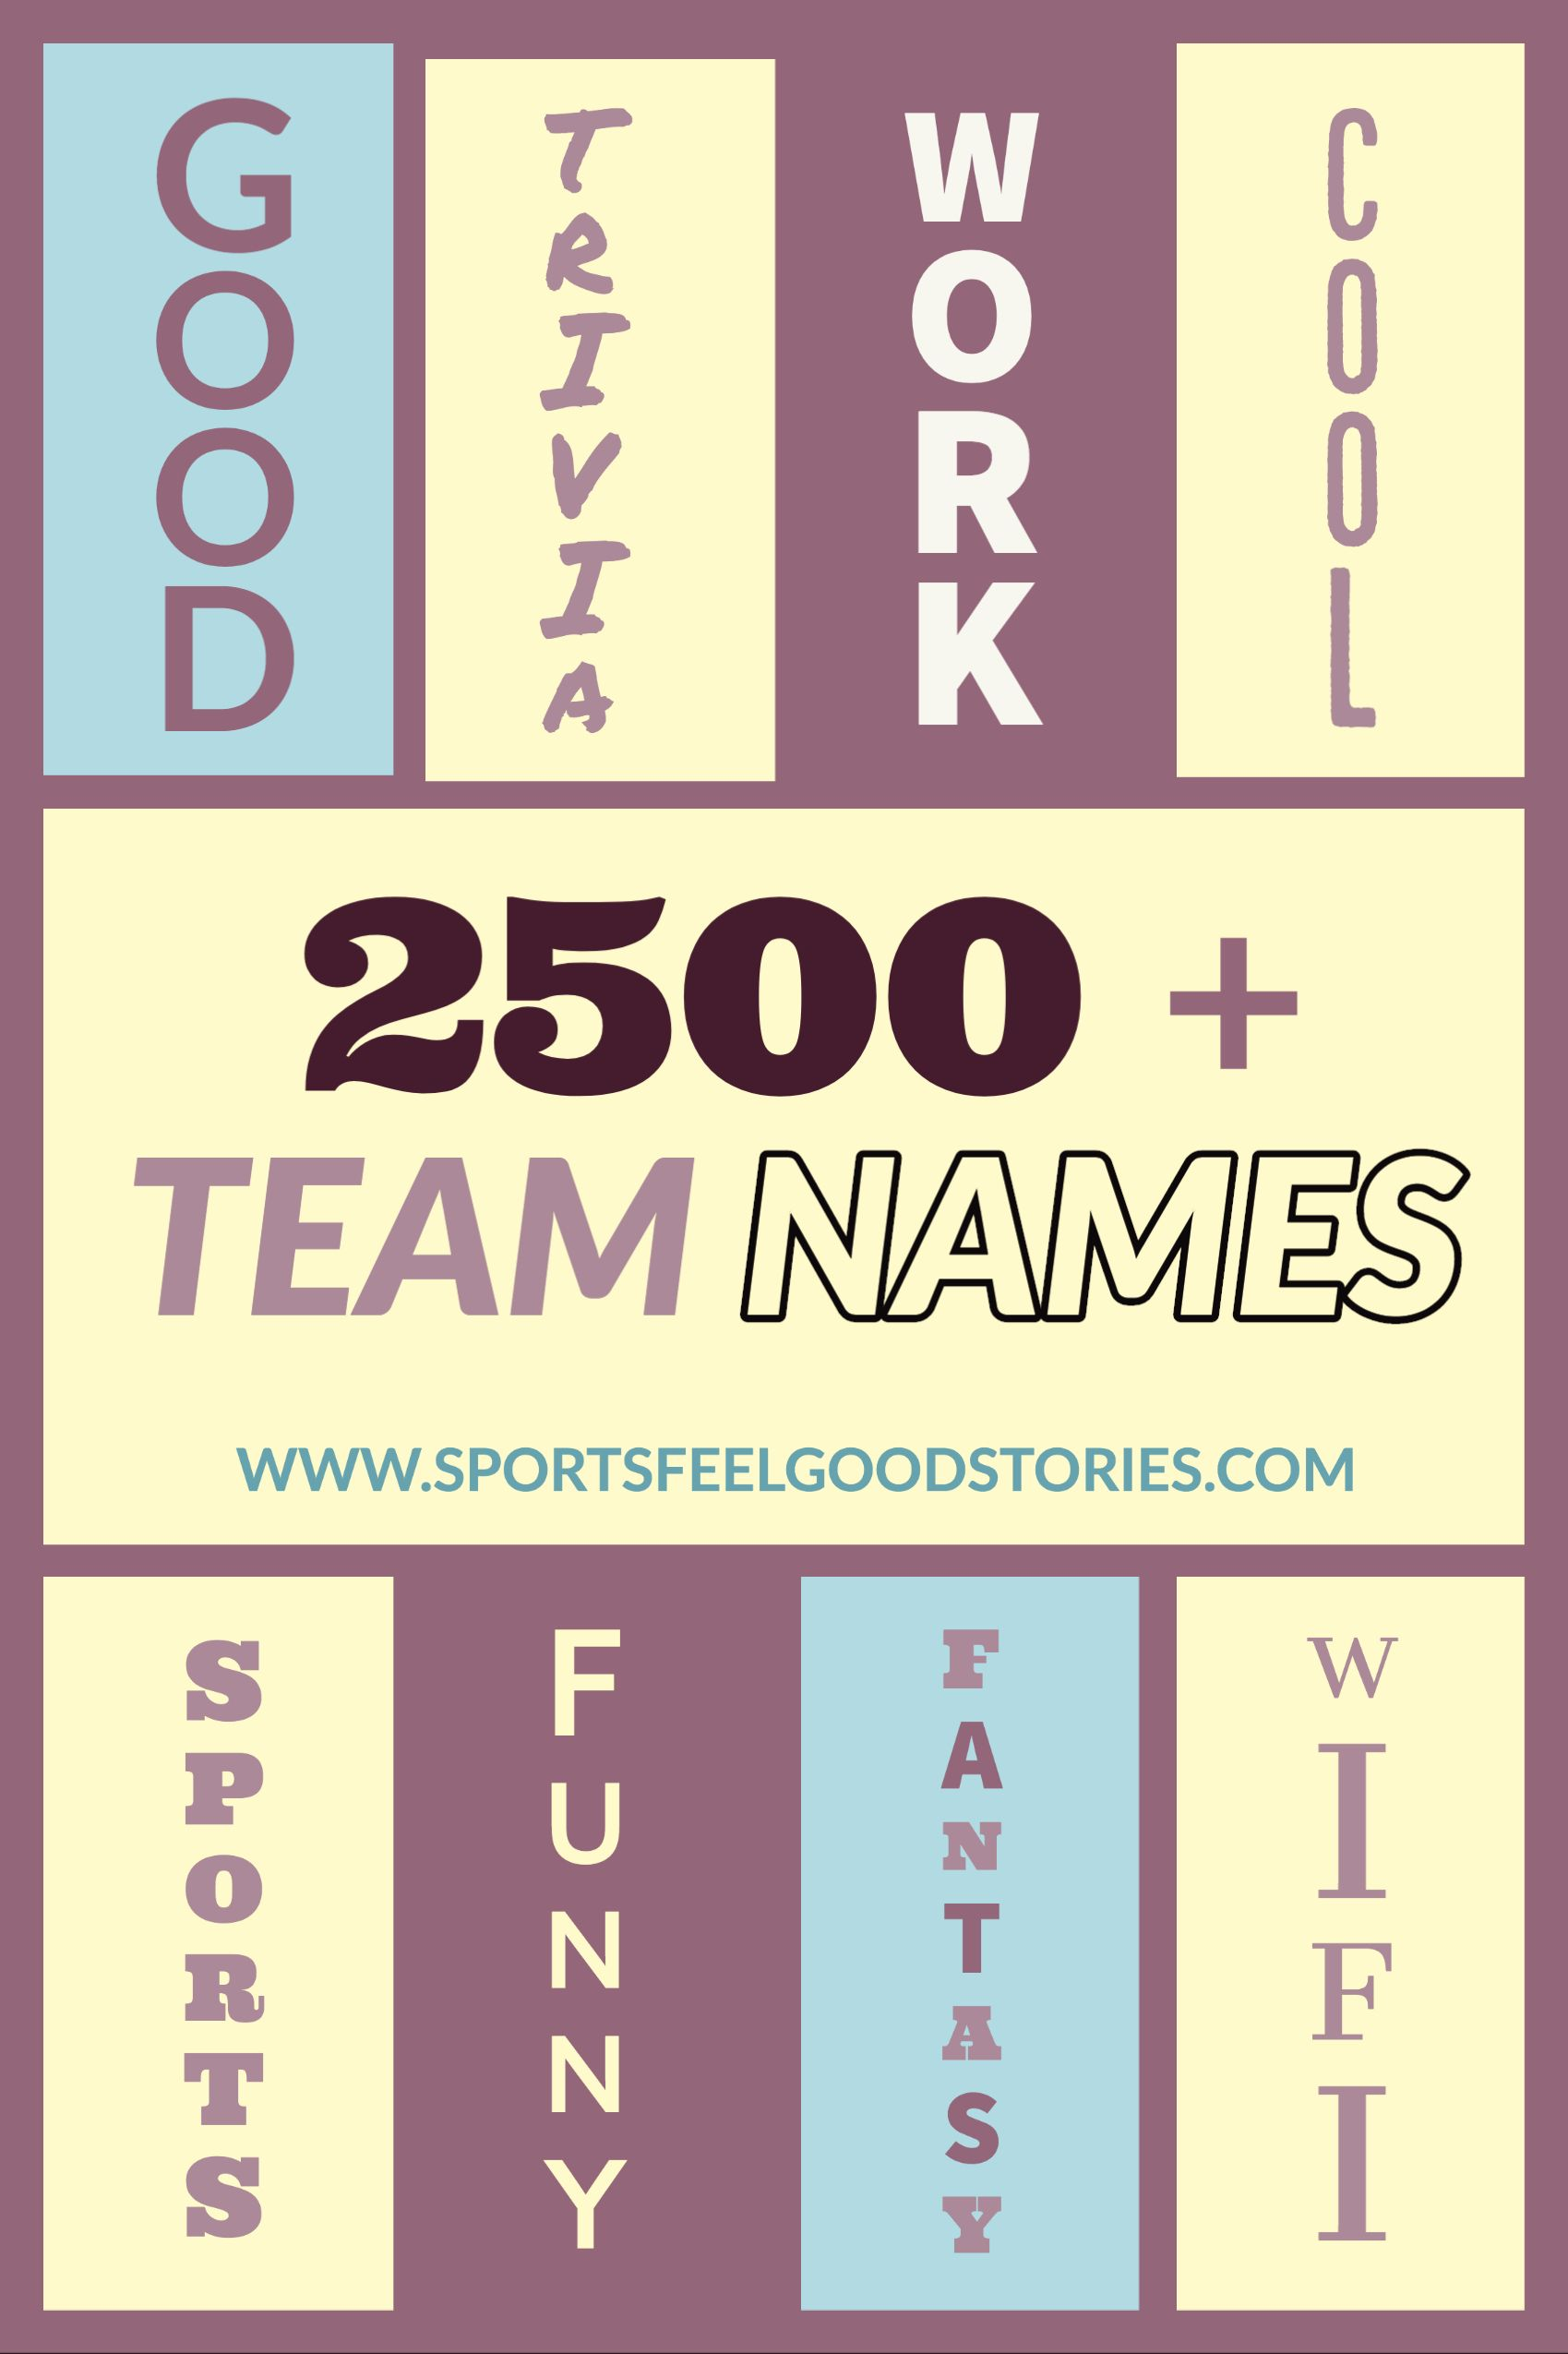 Super Cool Team Names For Sports Business And Other Groups In 2020 Team Names Team Names For Competition Names